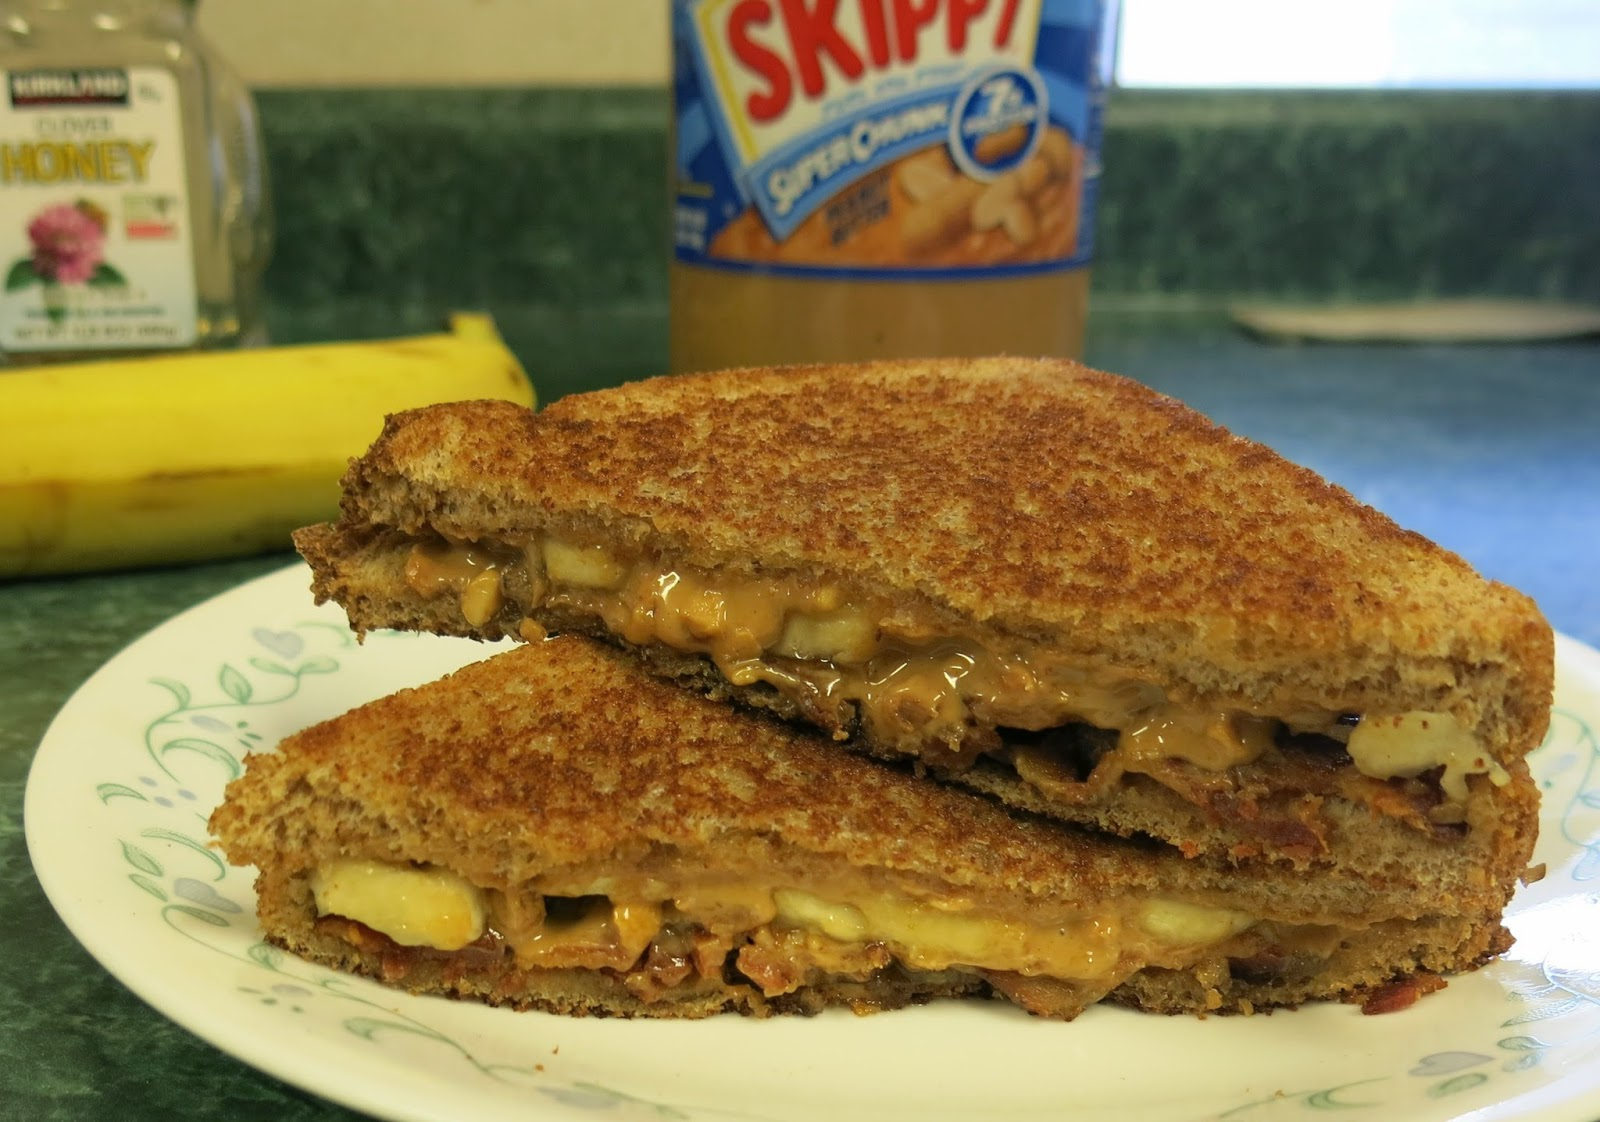 peanut butter, banana, honey and bacon grilled sandwich - the elvis